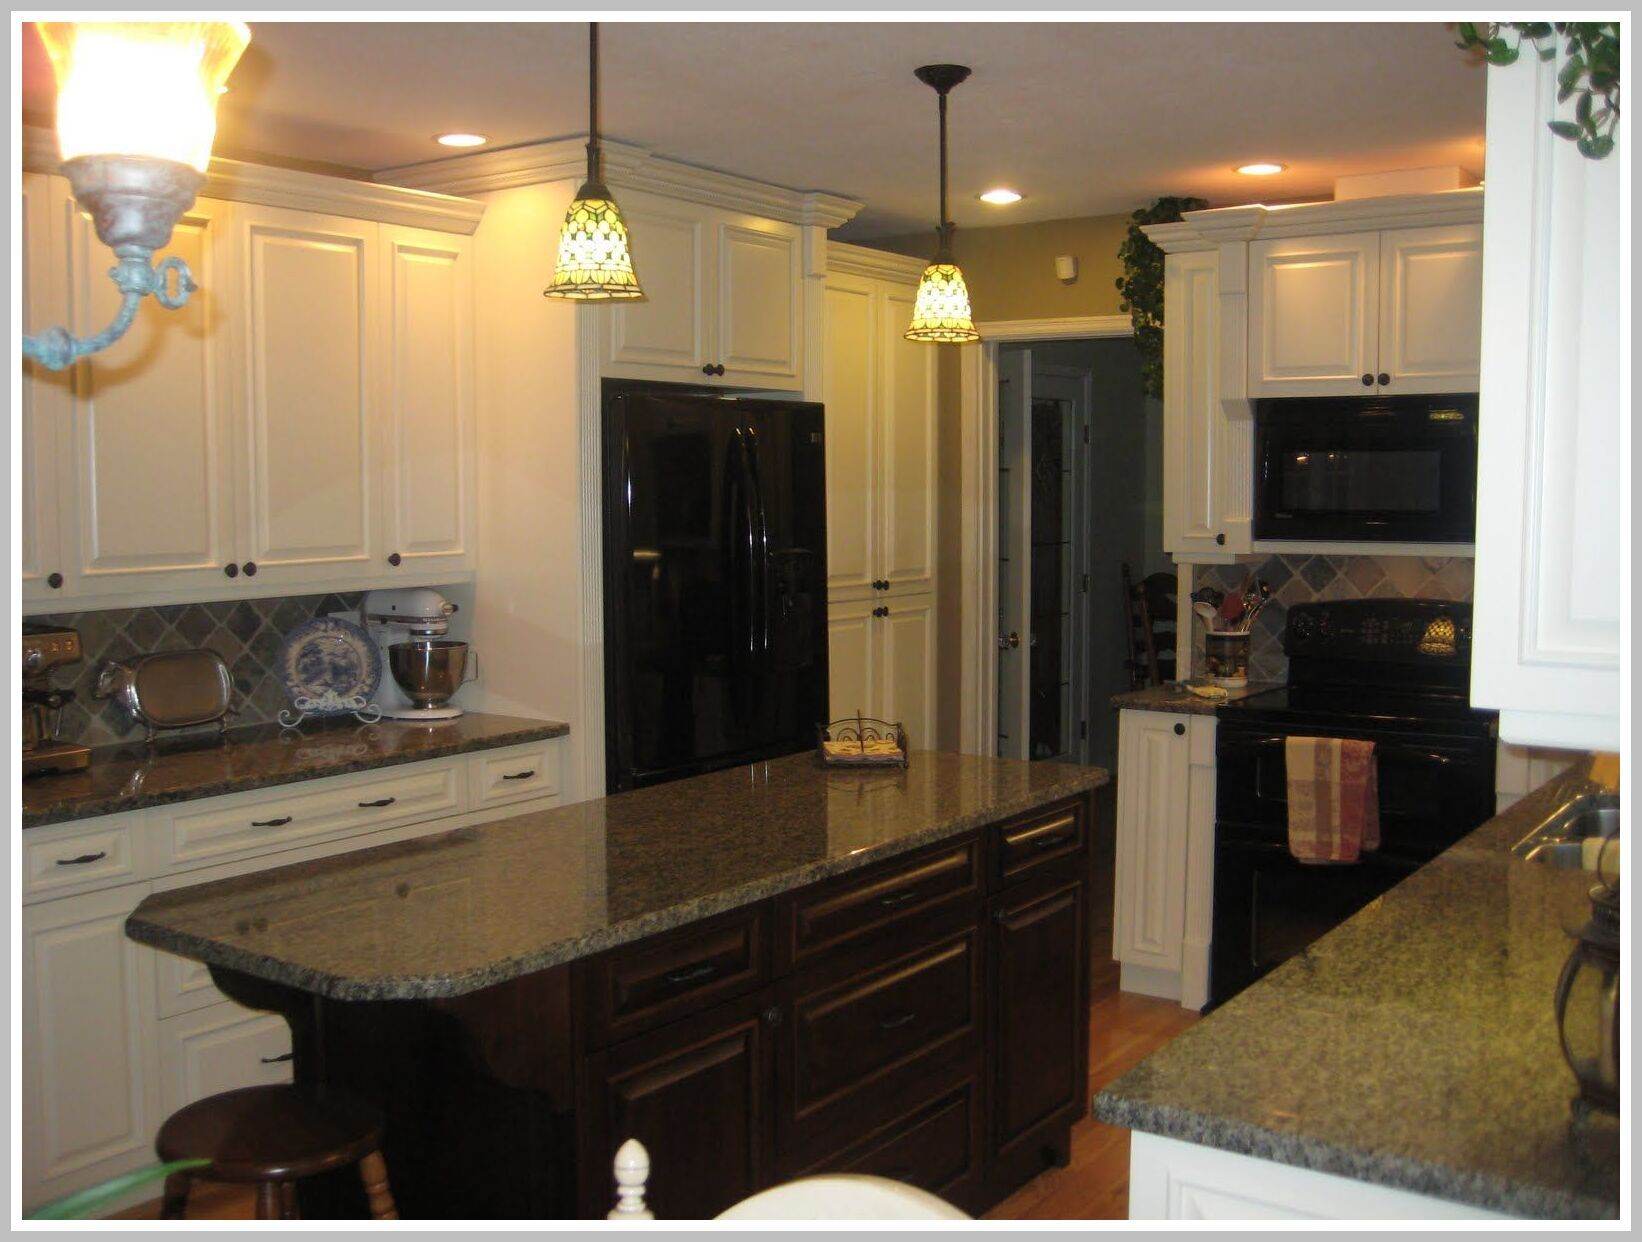 41 Reference Of Black Countertops With Brown Cabinets Kitchen Countertops Granite Colors Kitchen Cabinets With Black Appliances Black Countertops